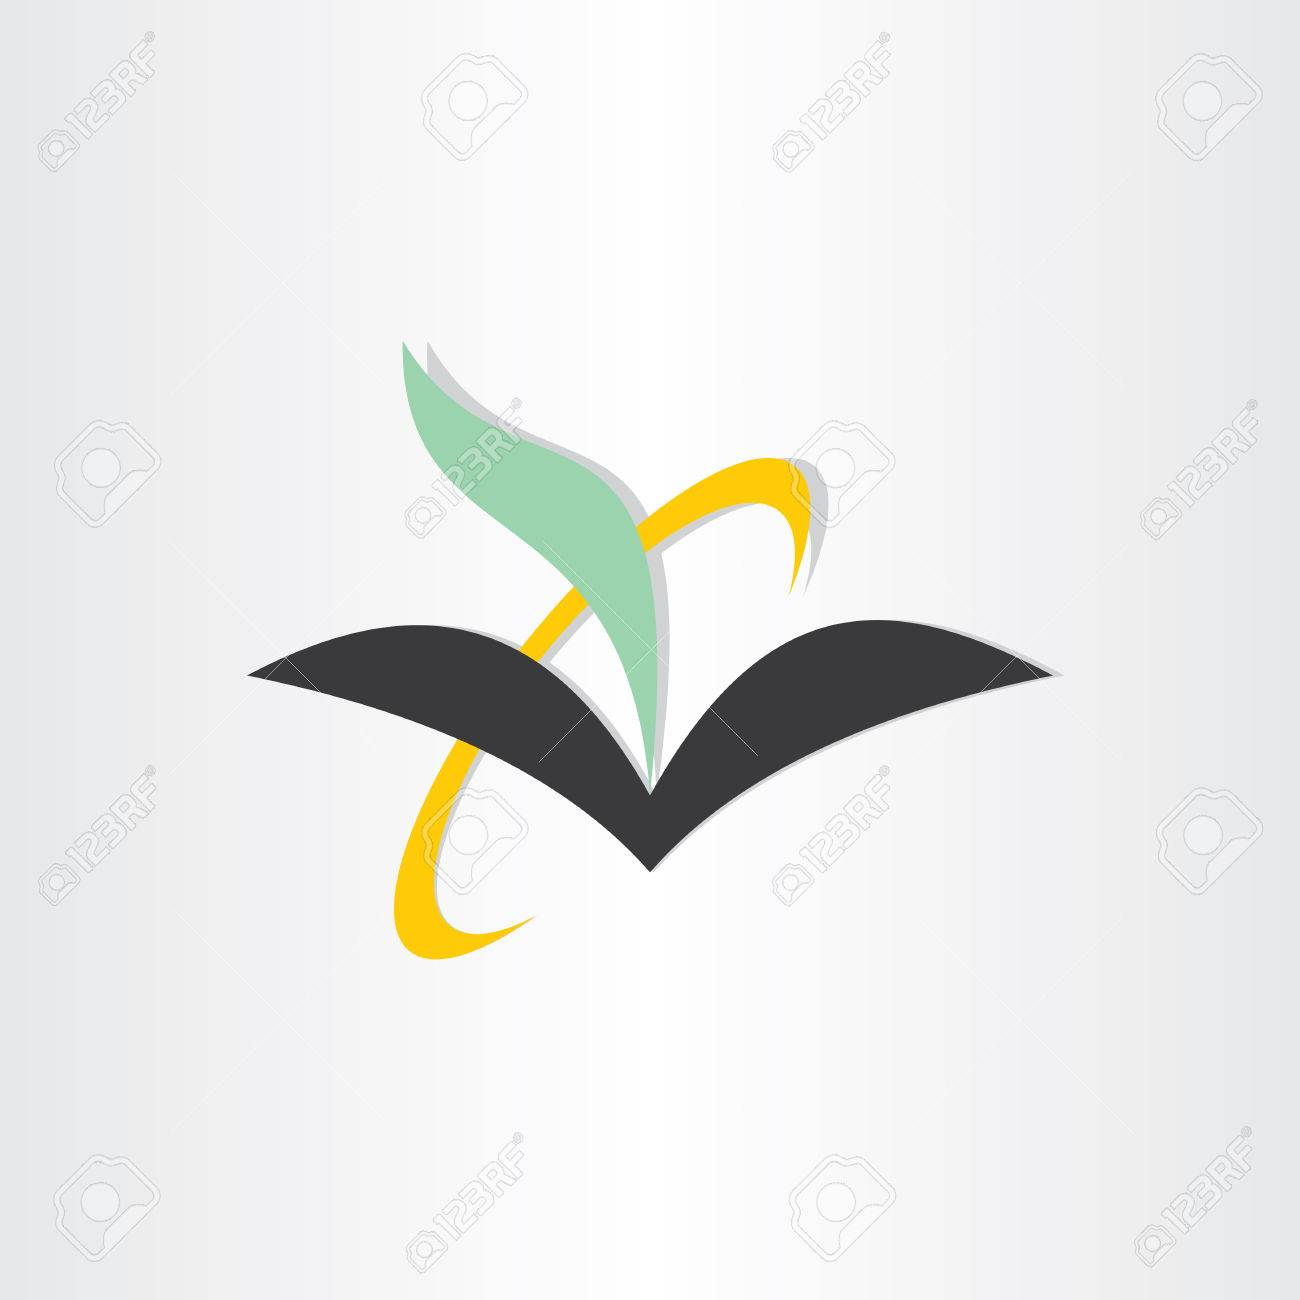 book and feather education icon poety literature symbol emblem book and feather education icon poety literature symbol emblem enciclopedia stock vector 38306493